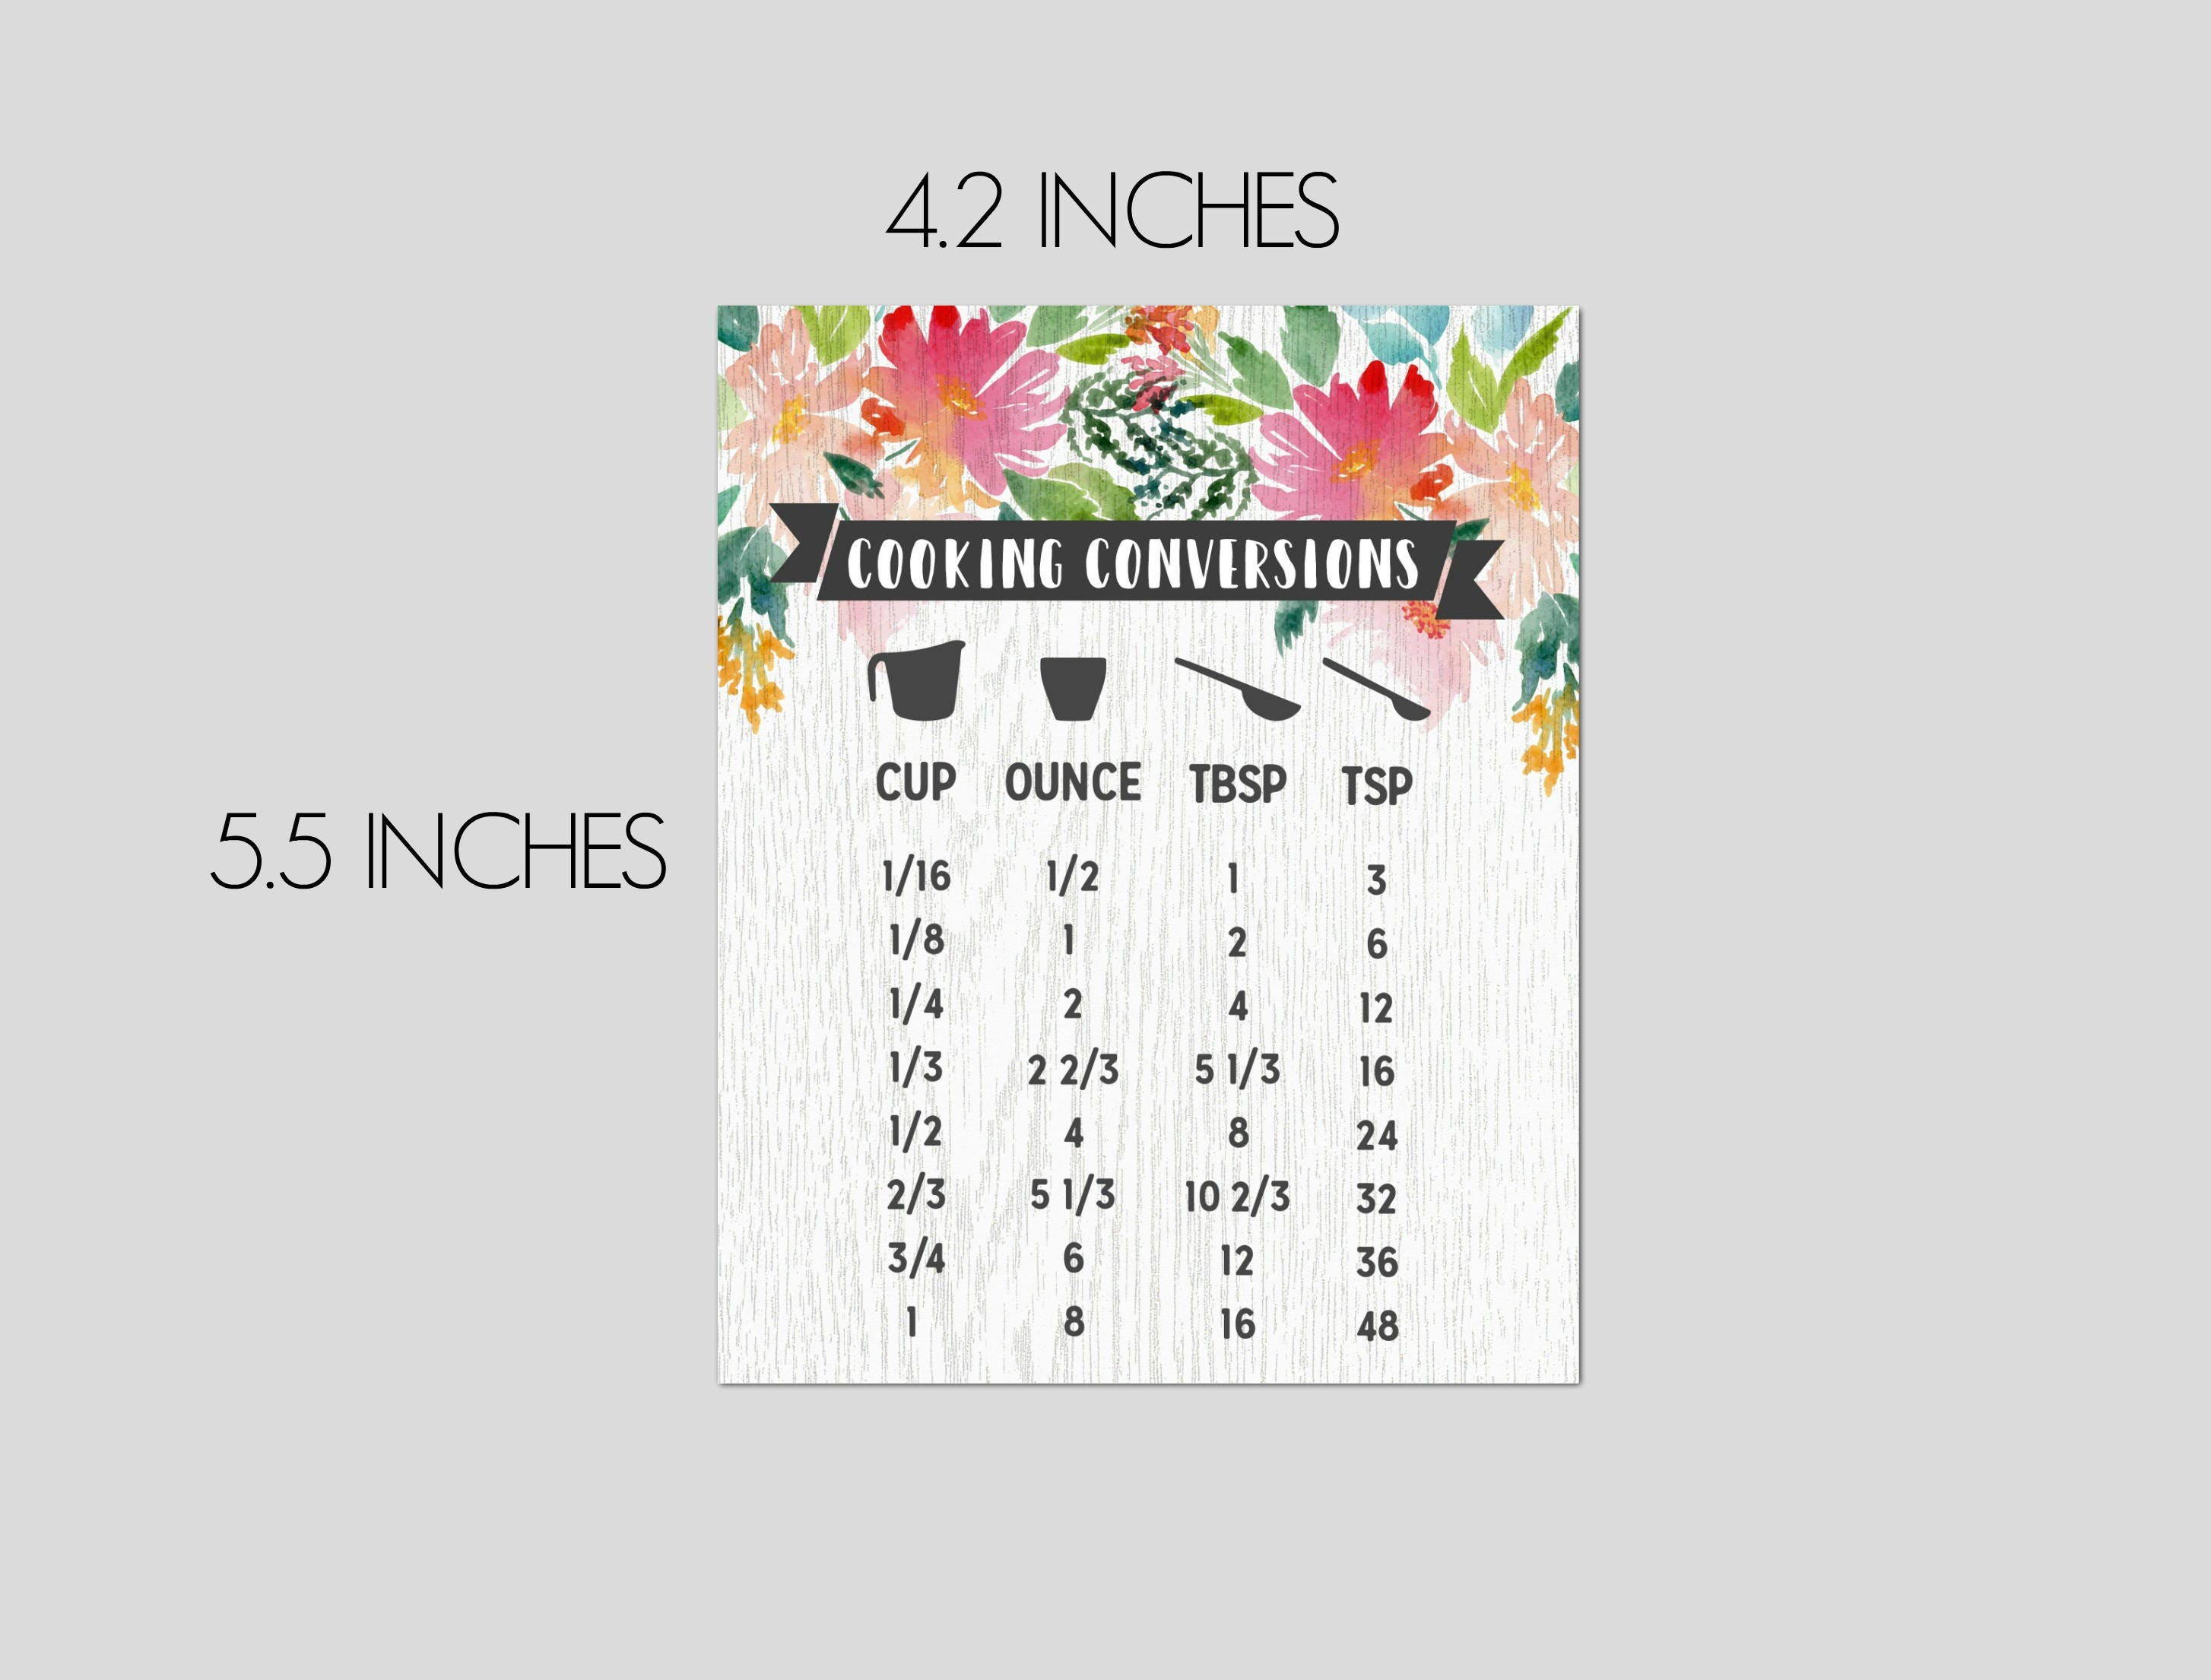 Cooking Conversion Chart | Rustic Wood & Watercolor Floral | Baking ...